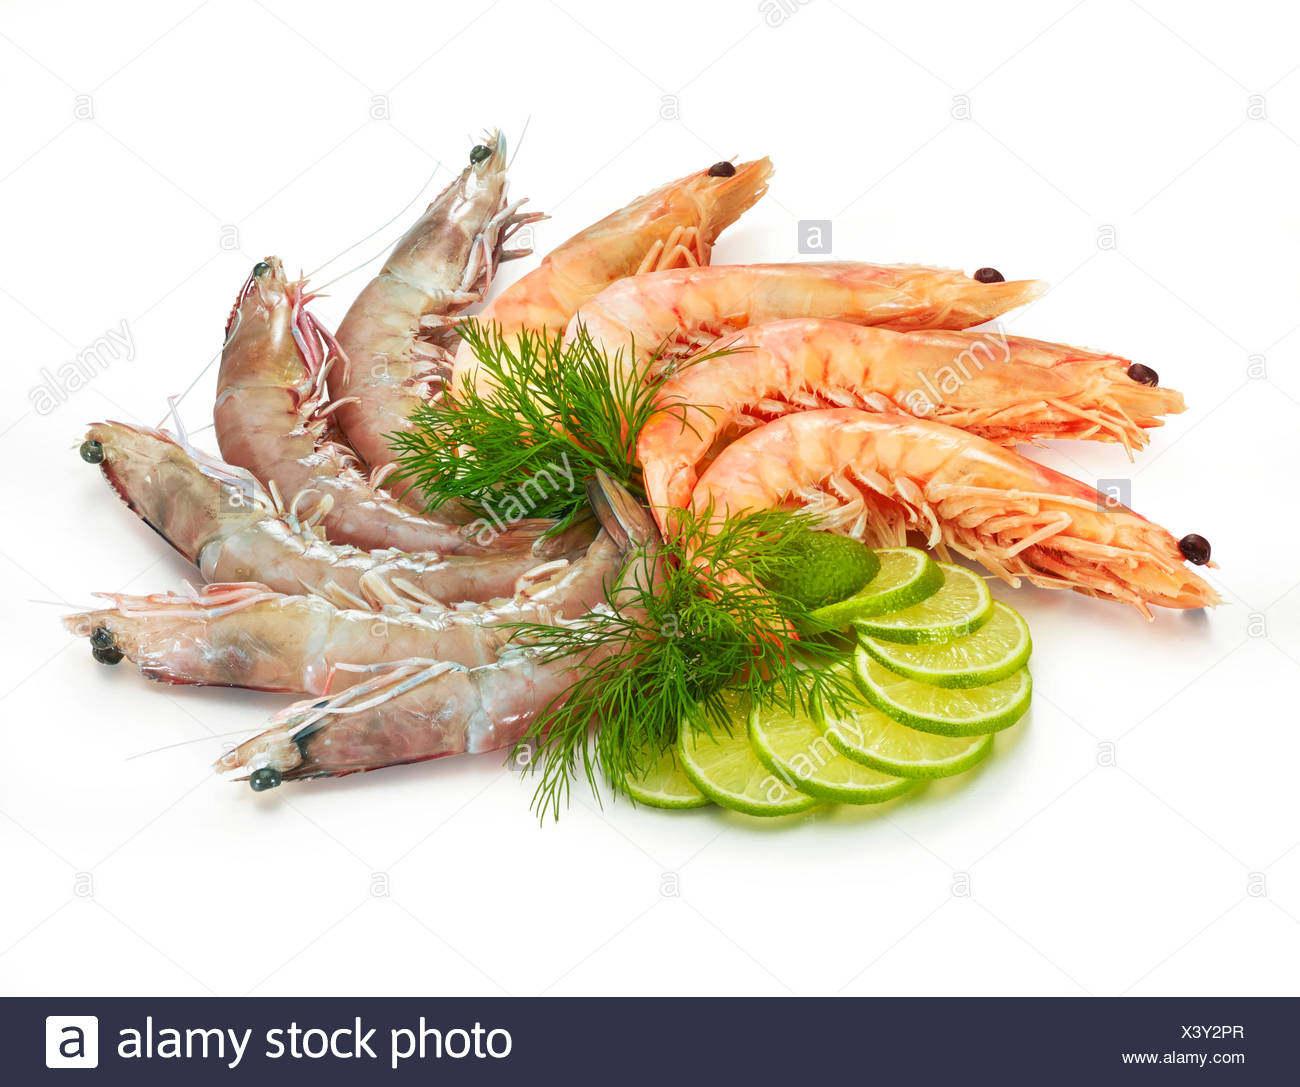 Boiled and raw prawns, lime slices (Citrus aurantifolia) and dill (Anethum graveolens), white background - Stock Image